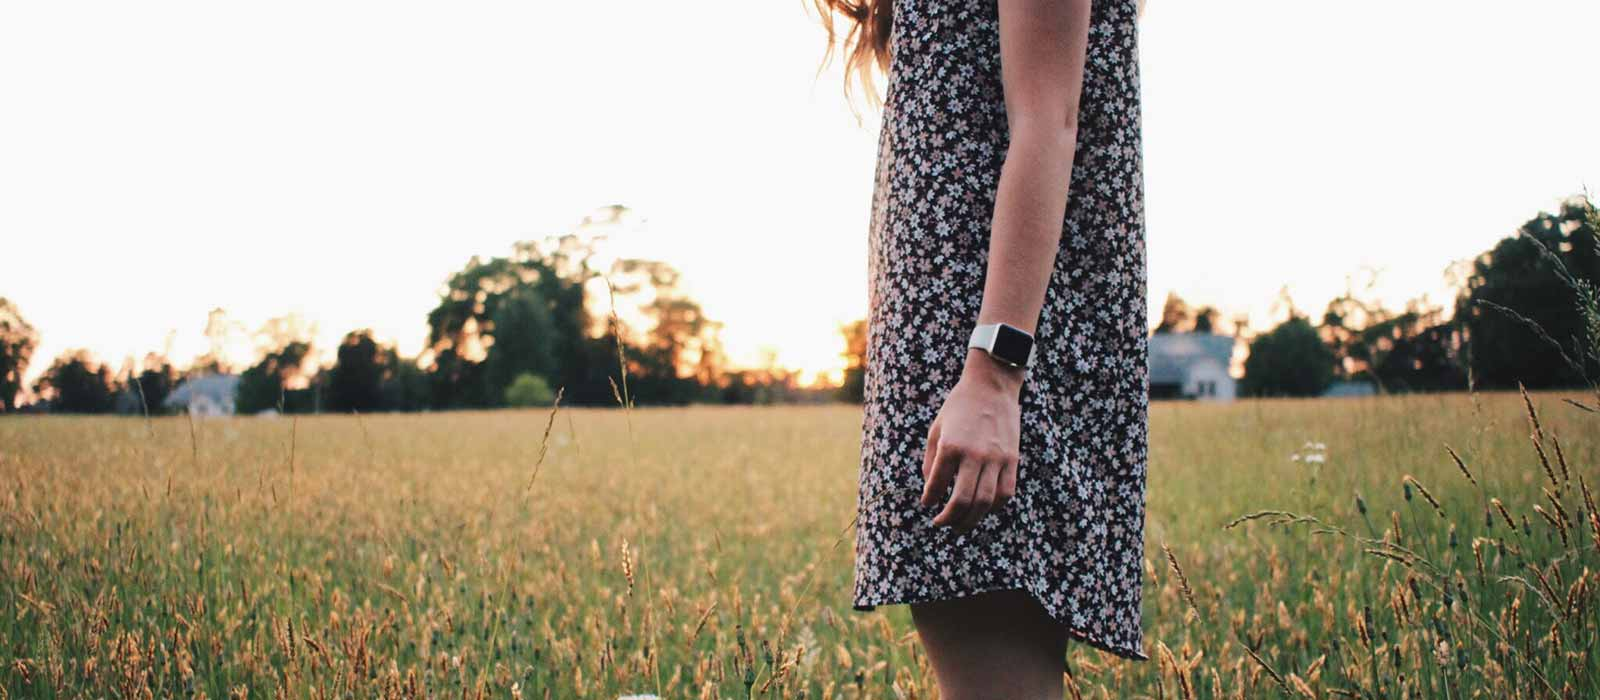 Lady wearing a smartwatch outdoors